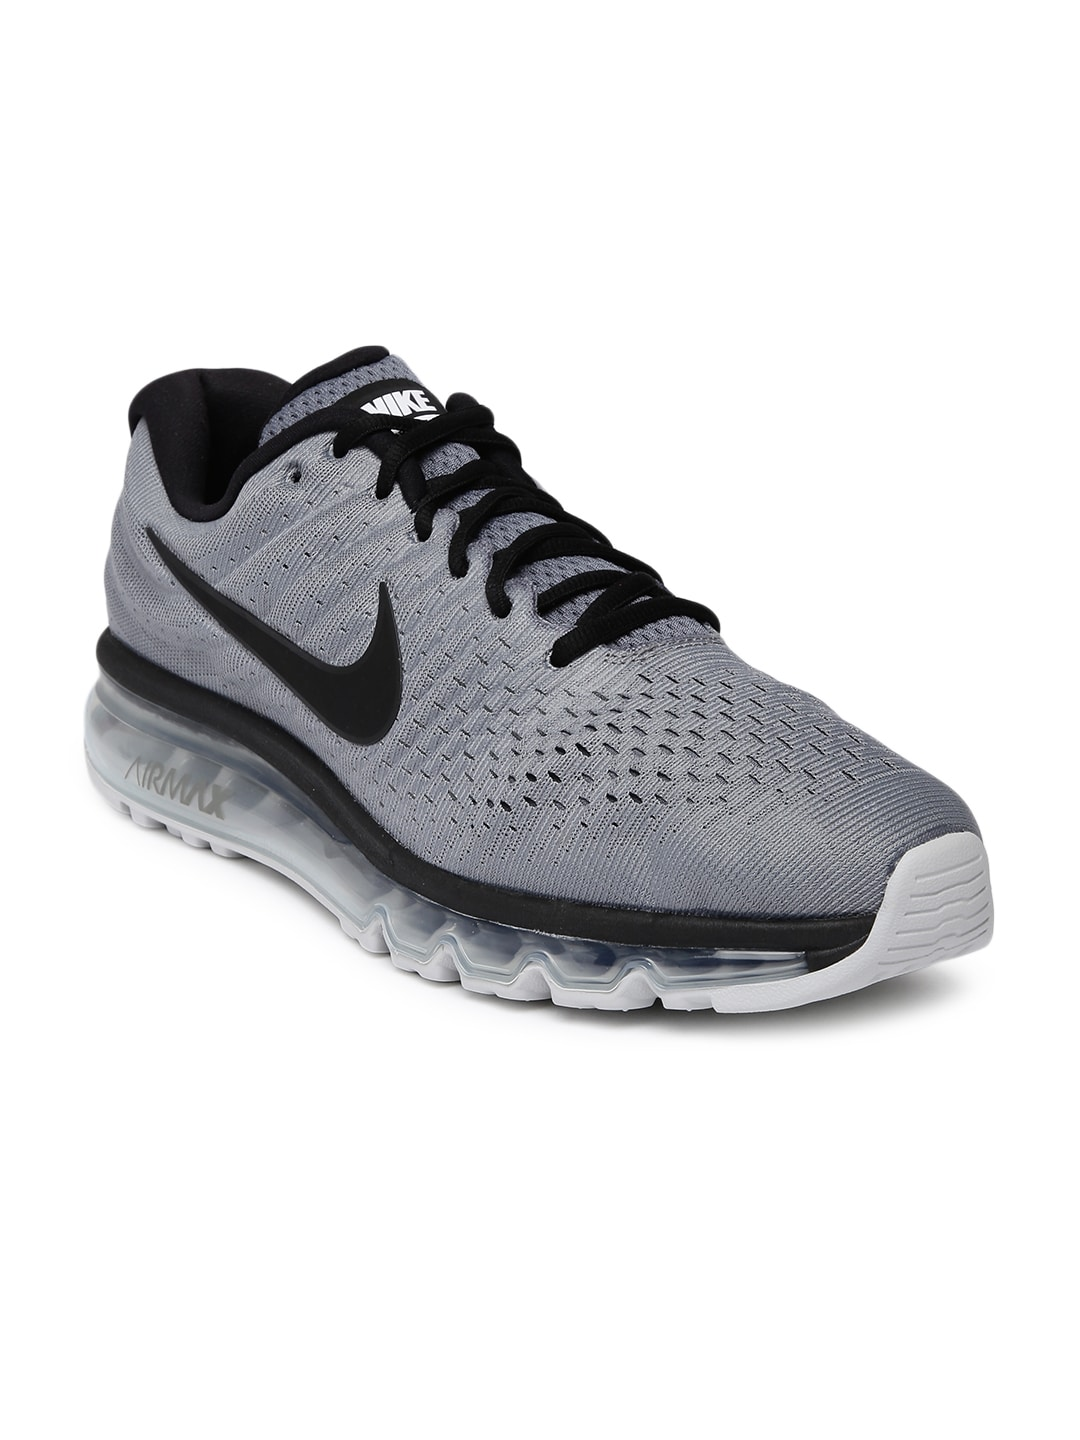 buy online f0384 93bbd Nike Air Max Shoes - Buy Nike Air Max Shoes Online for Men   Women